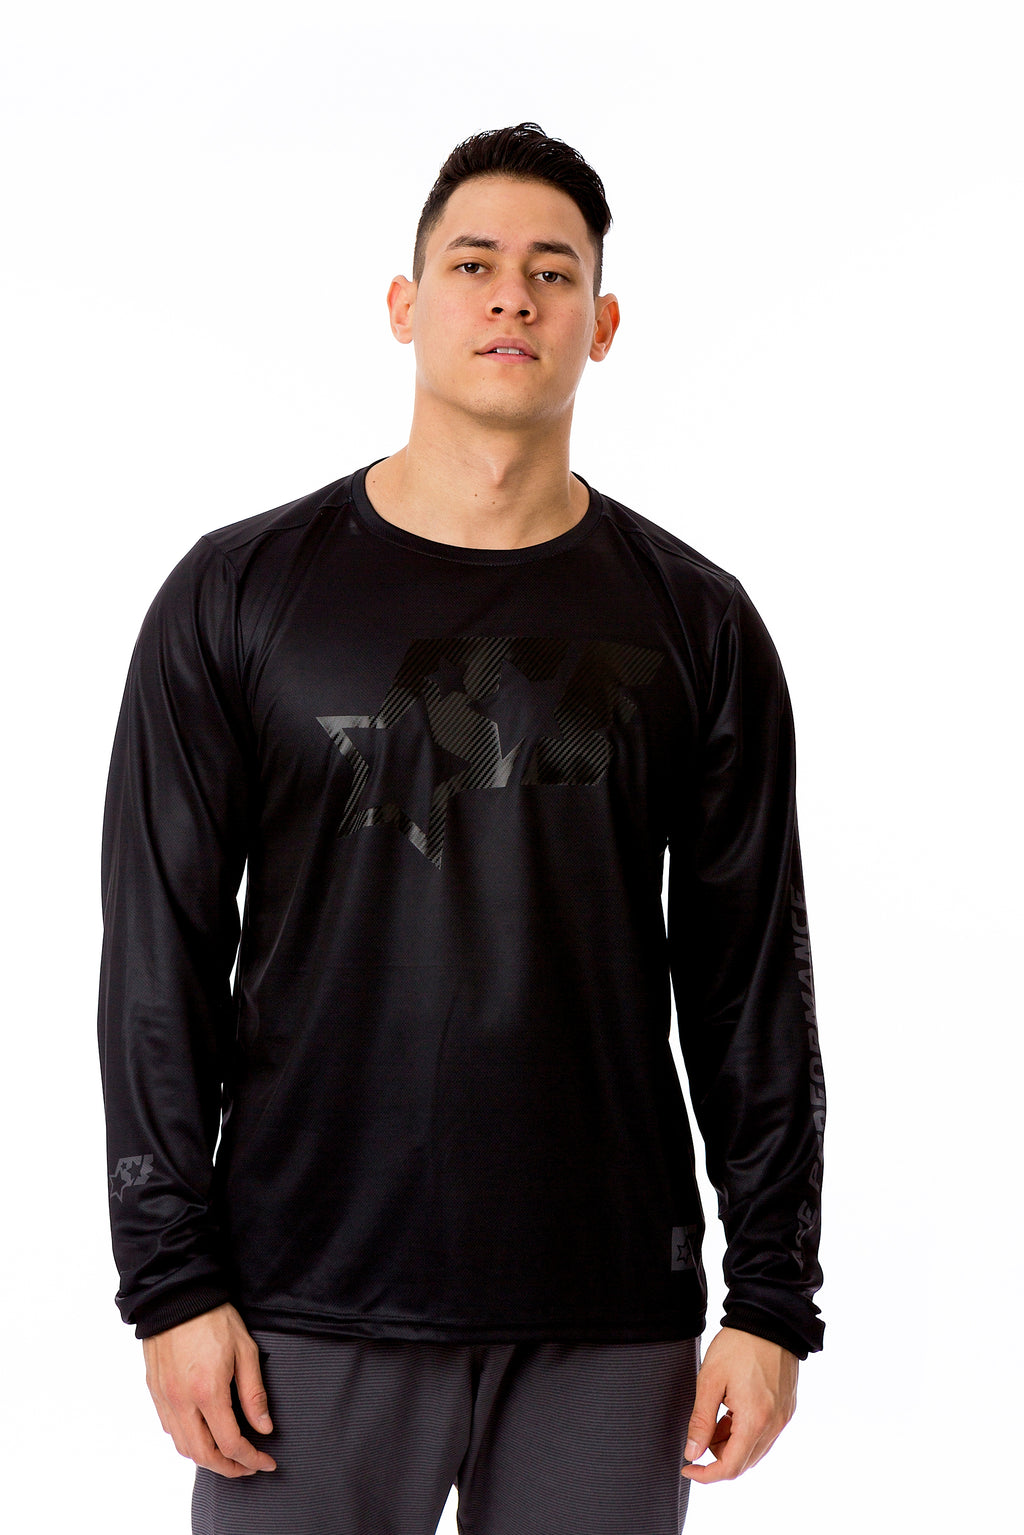 LONGSLEEVE SPORT SHIRT - BLACKONBLACK - ACEPERFORMANCE